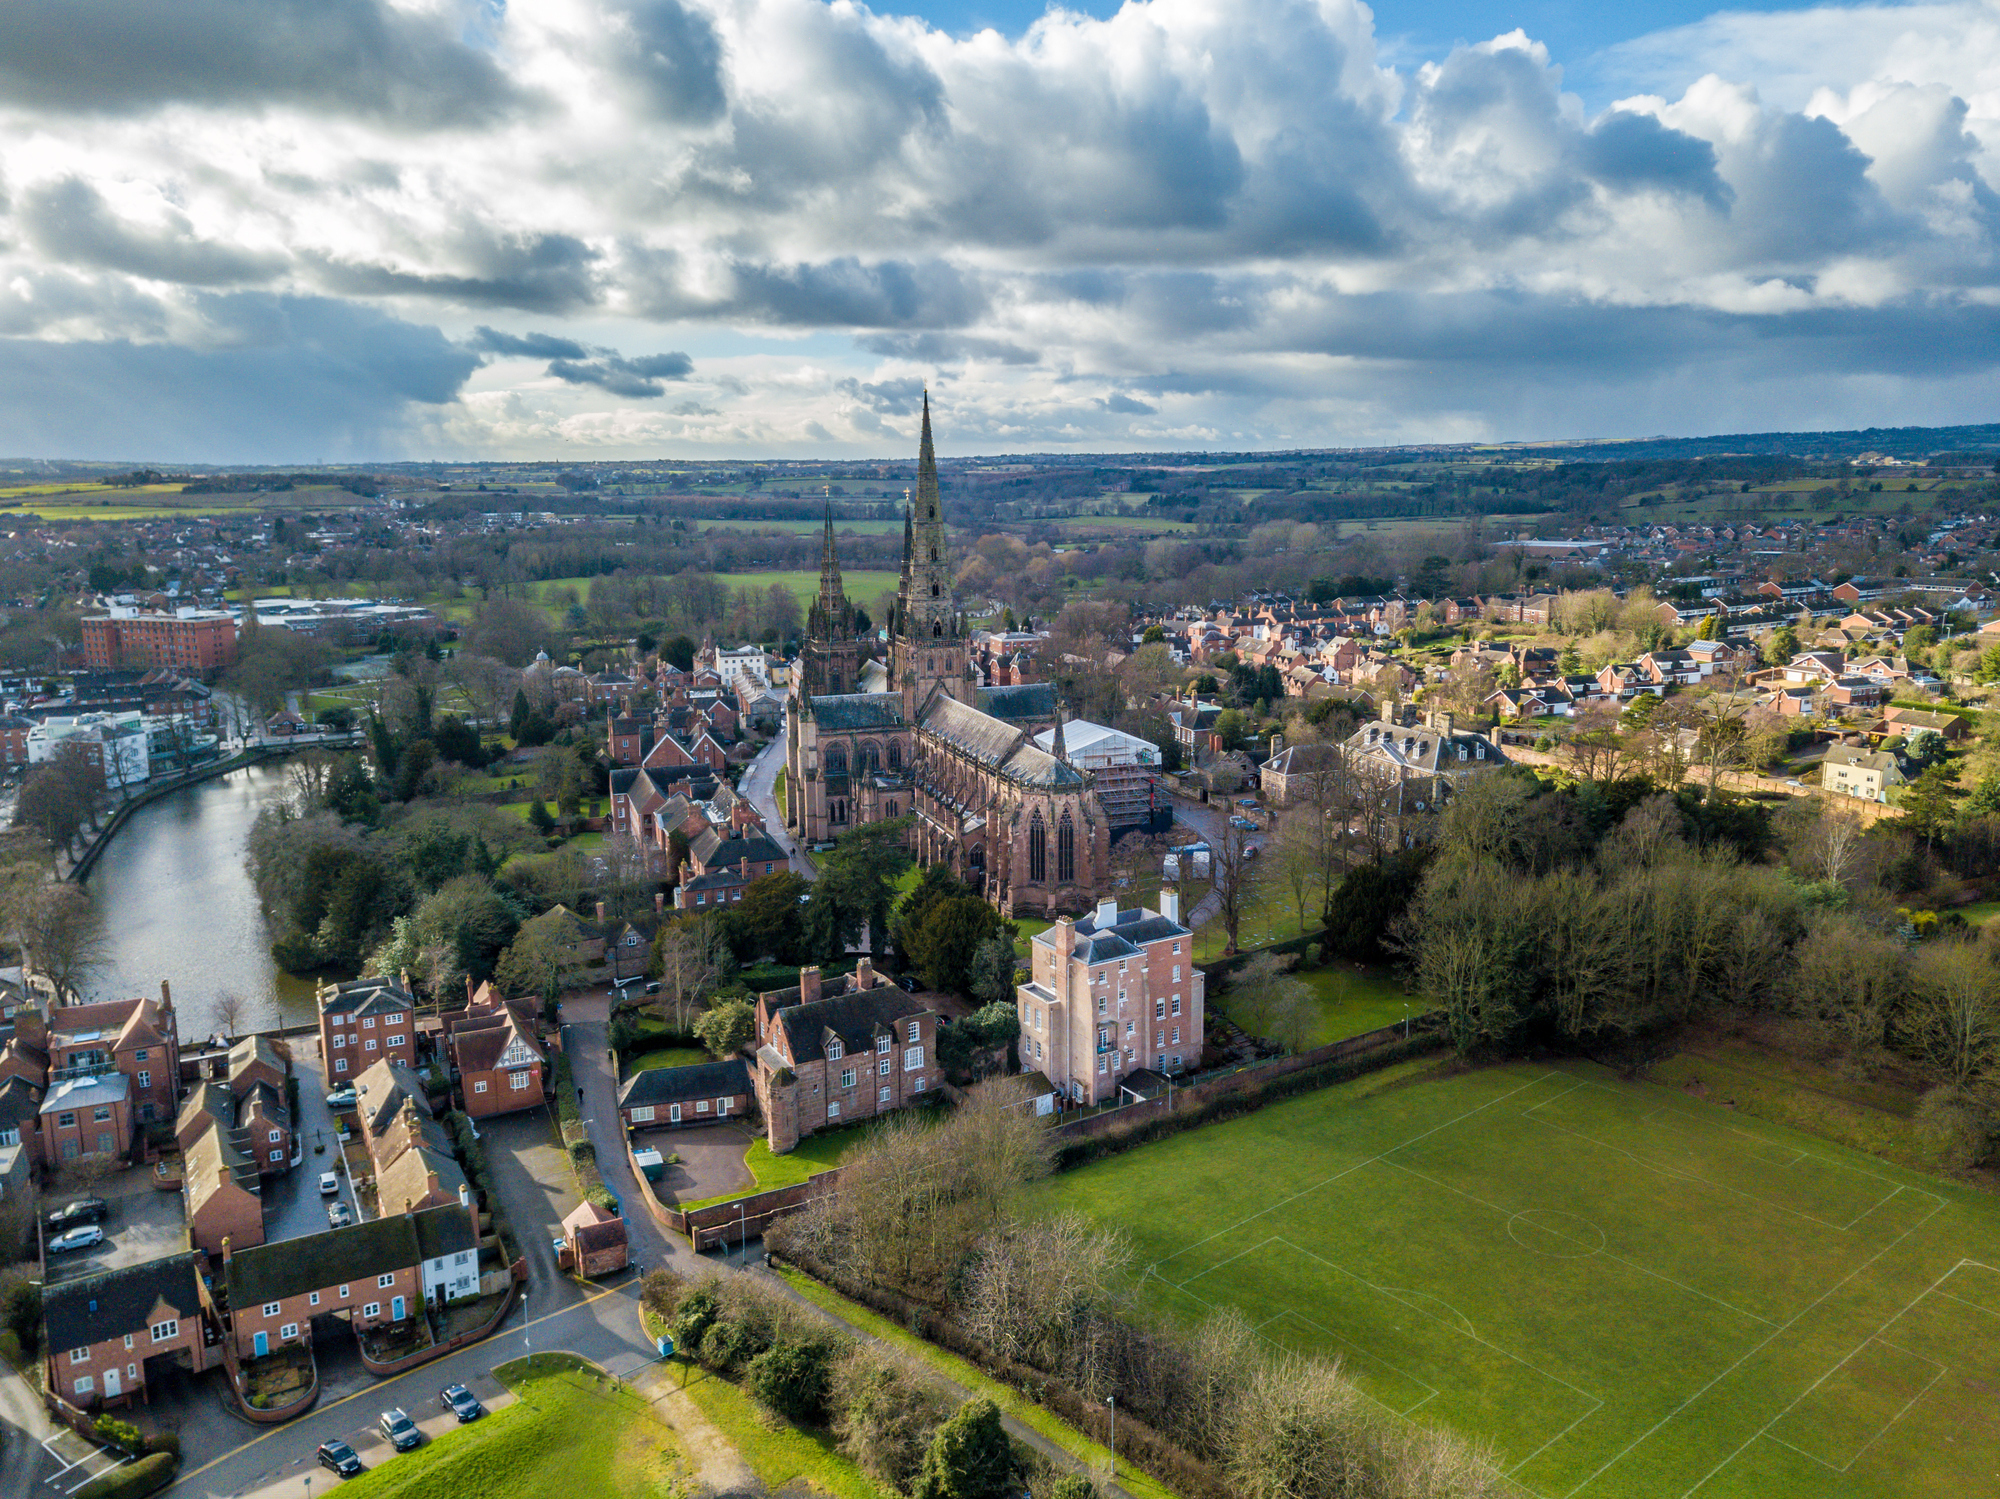 Looking over the City of Lichfield and the Cathedral